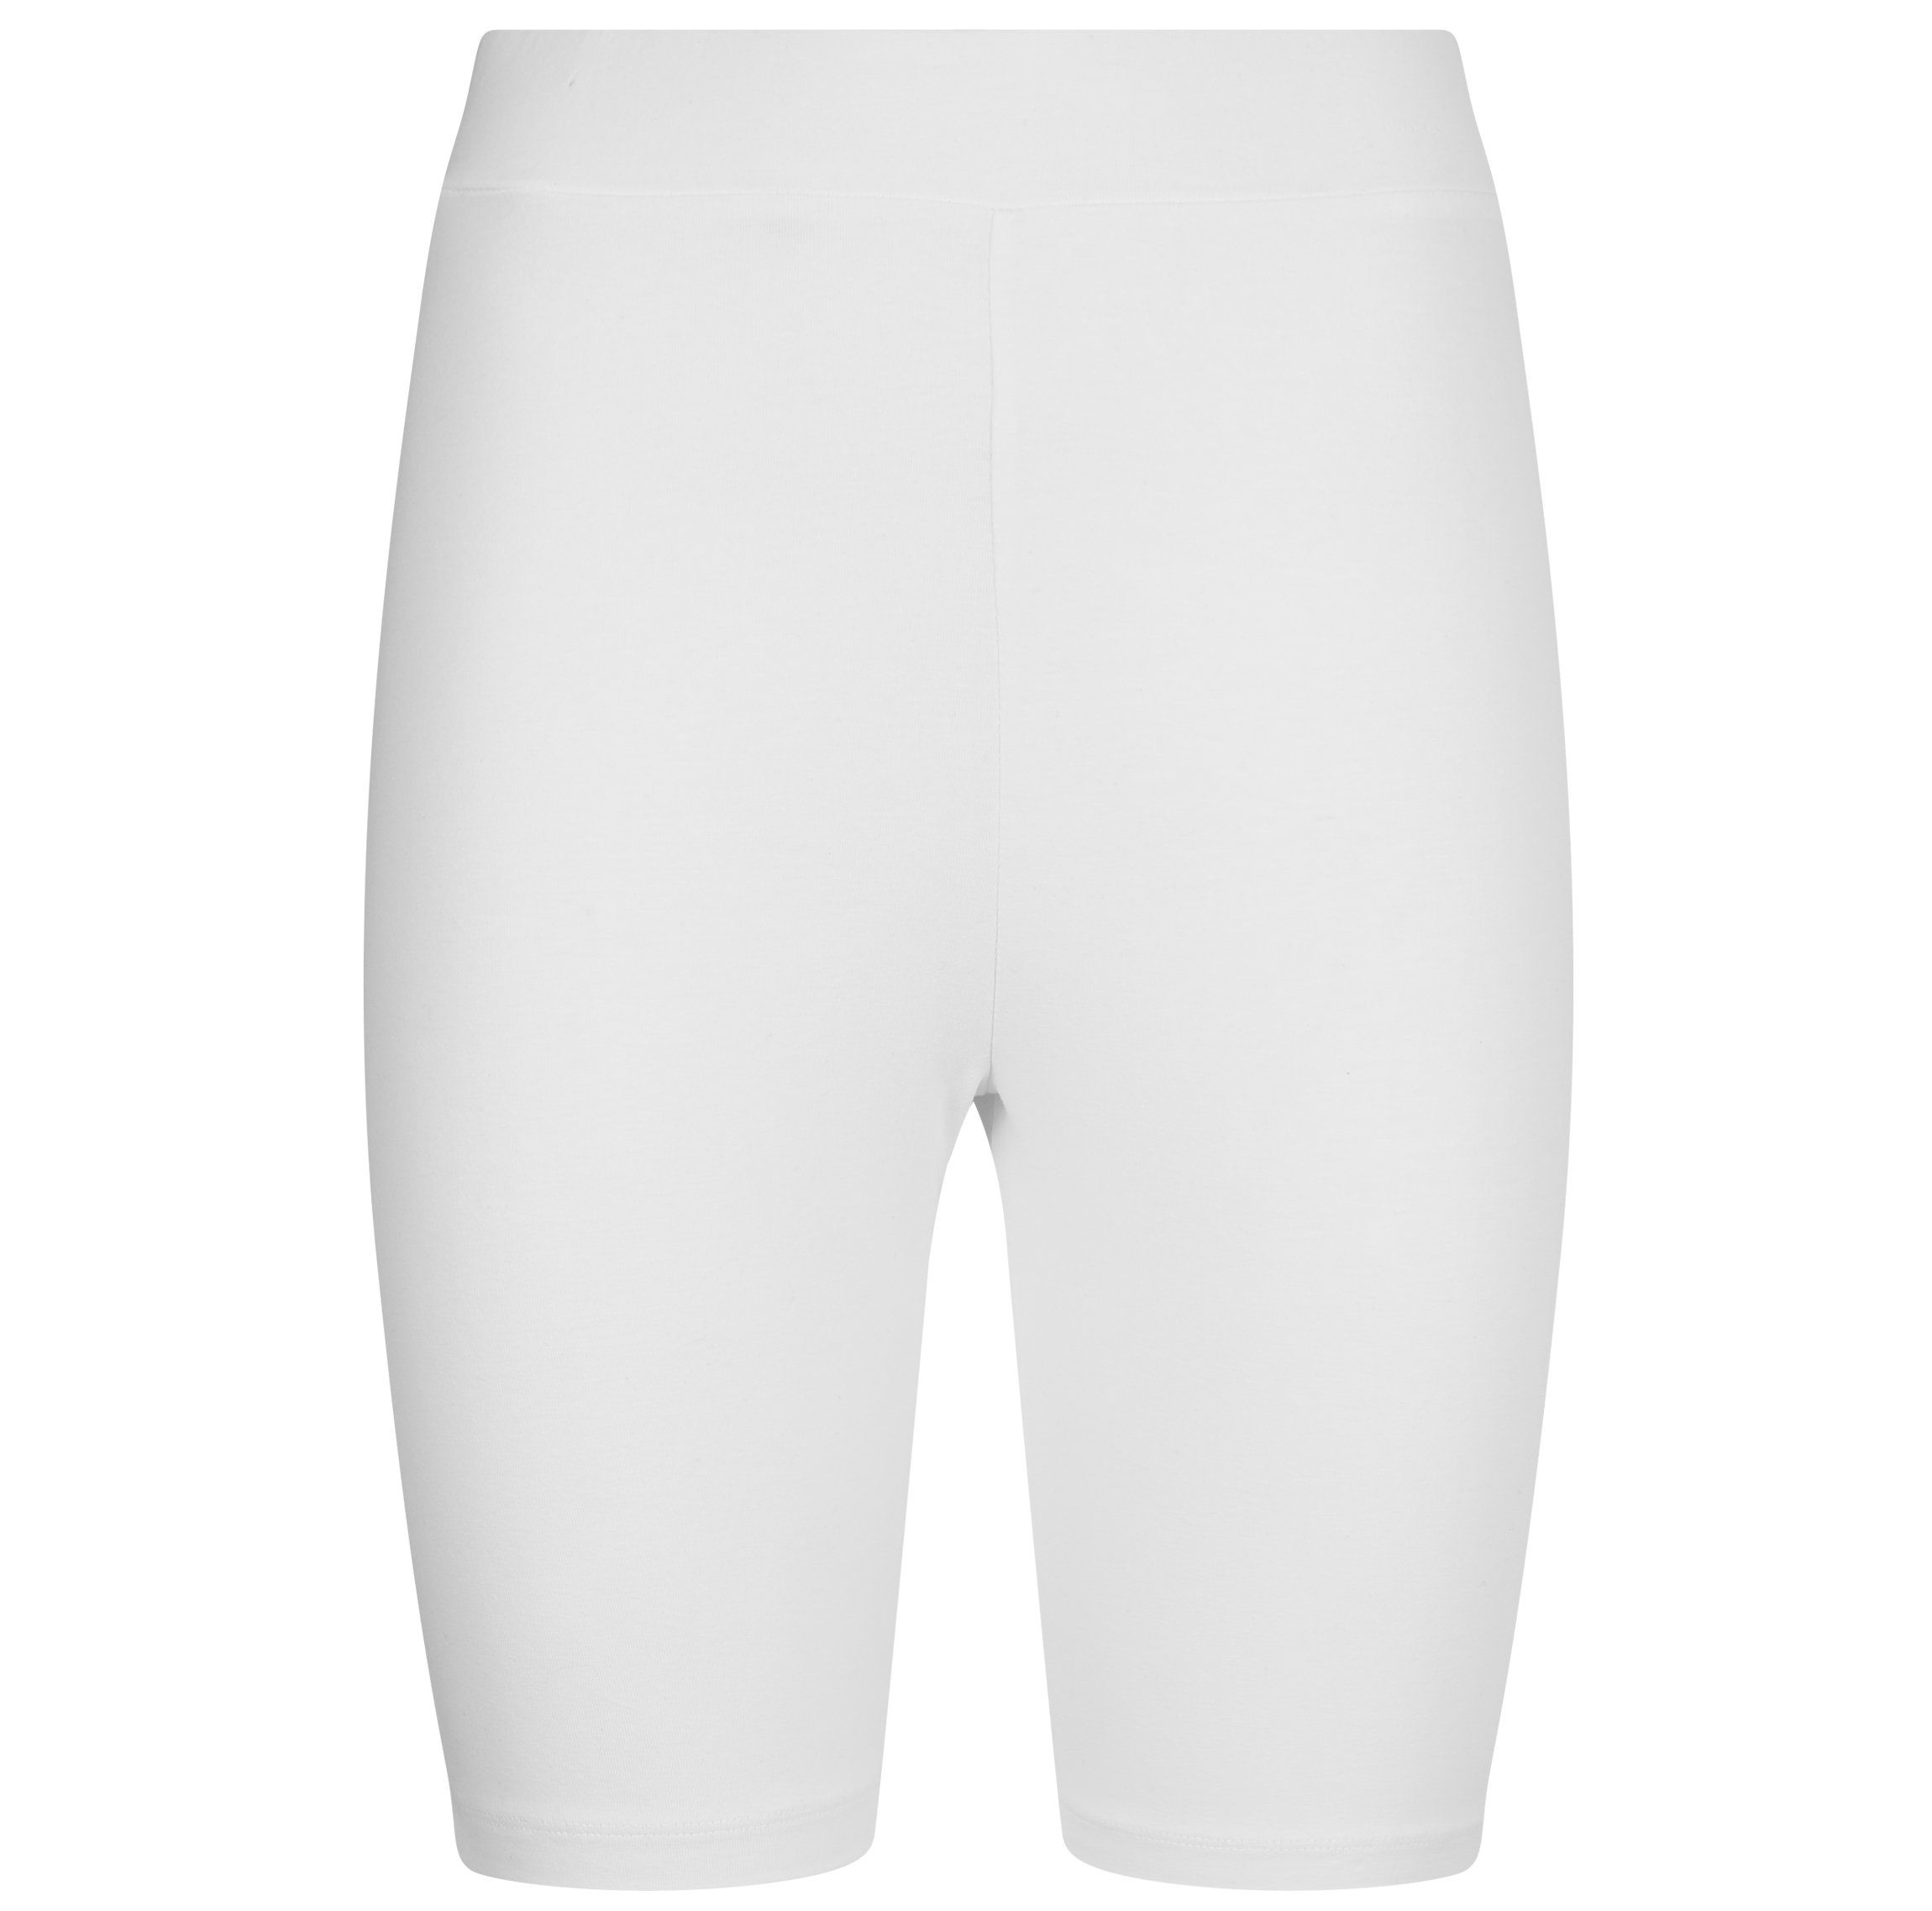 New Look White Cycling Shorts